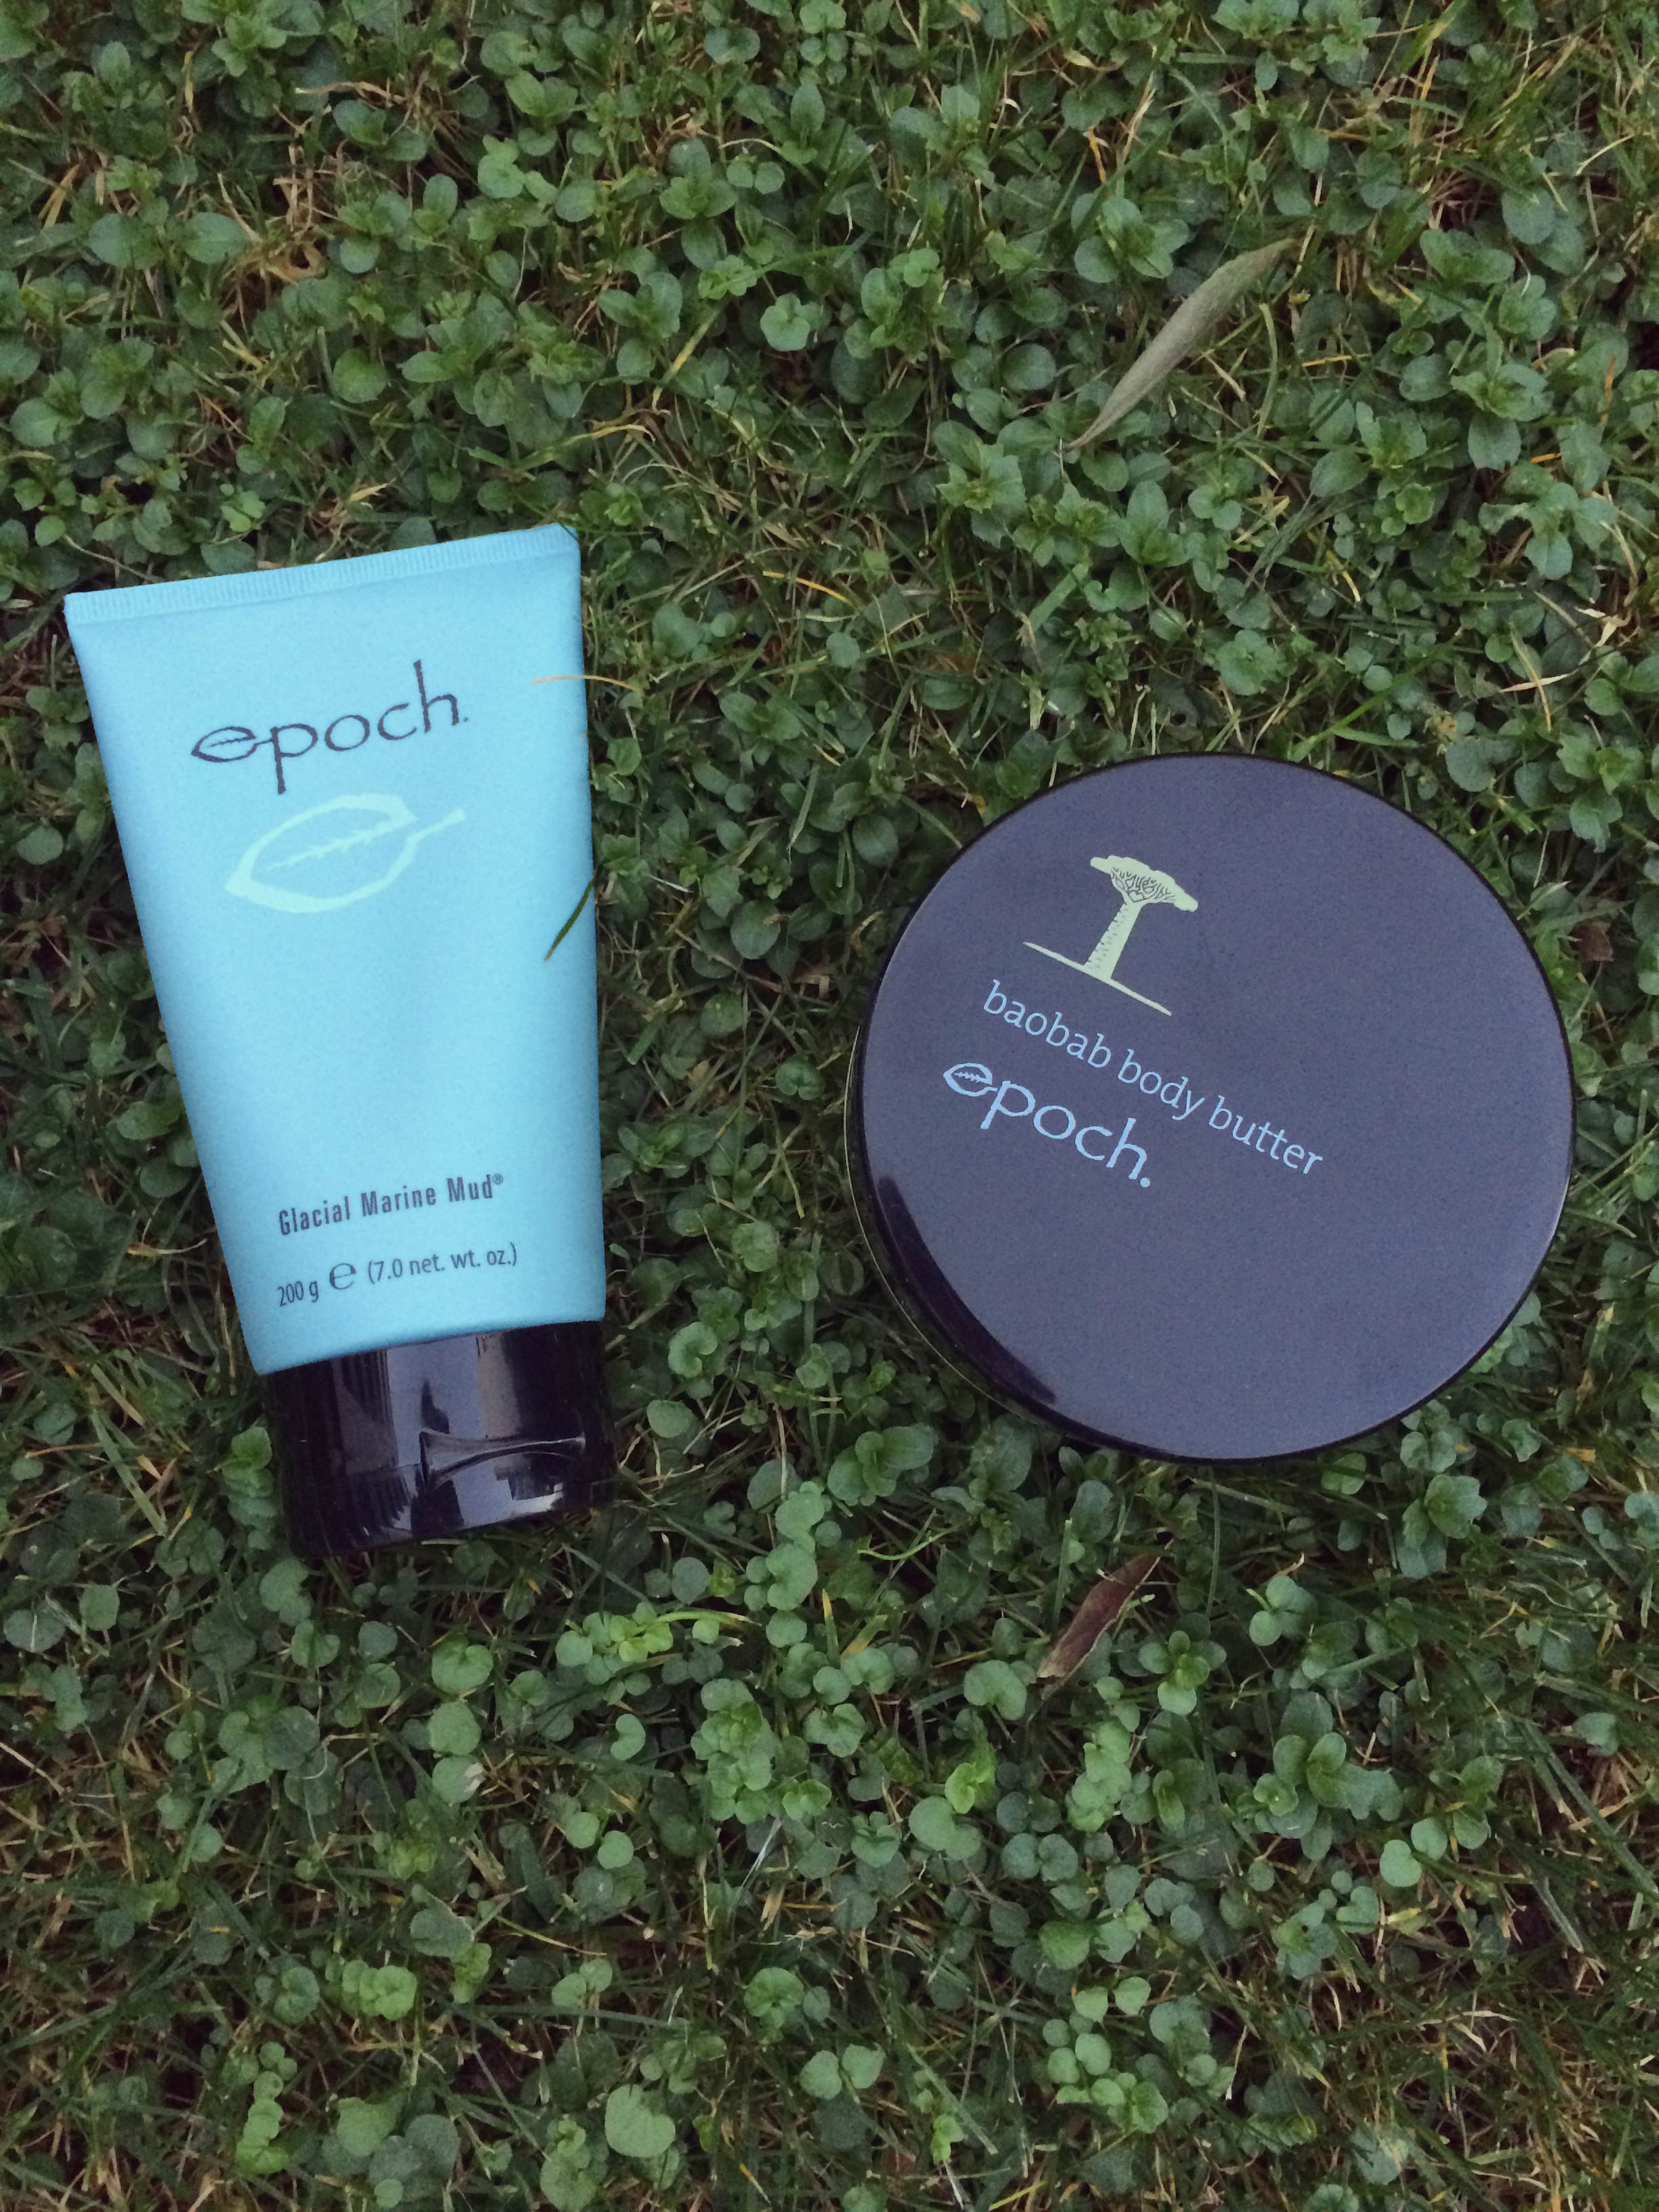 epoch products